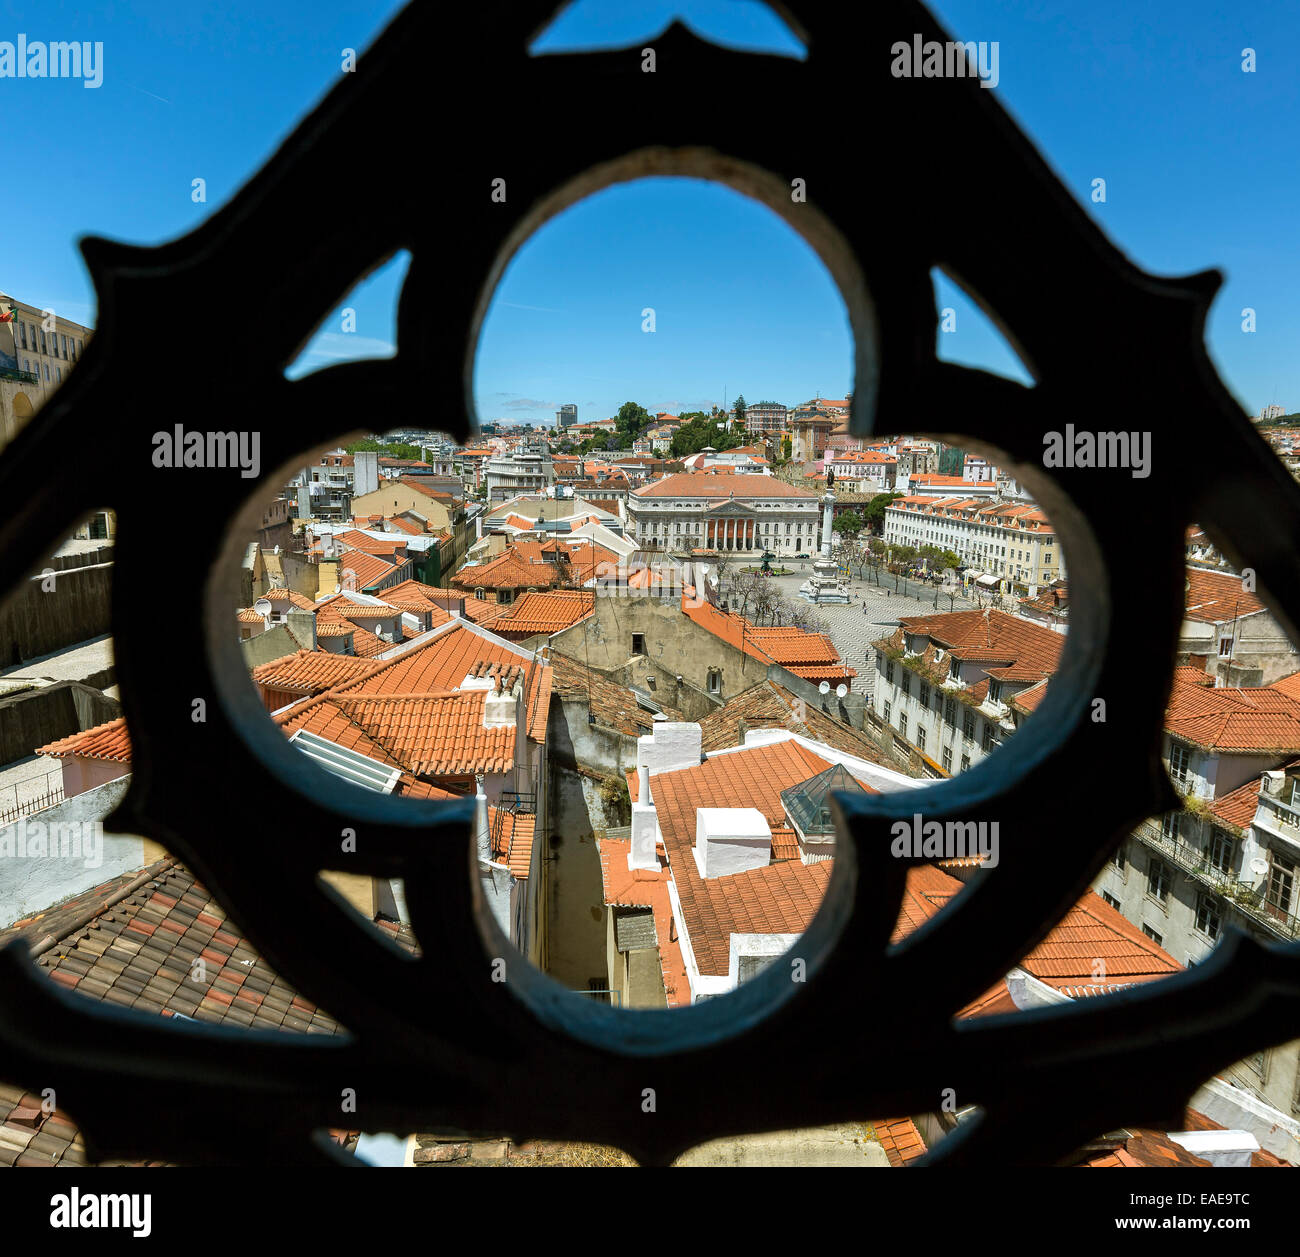 Outlook through a wrought iron grid of Santa Justa Elevator, Elevador de Santa Justa or Elevador do Carmo, over - Stock Image